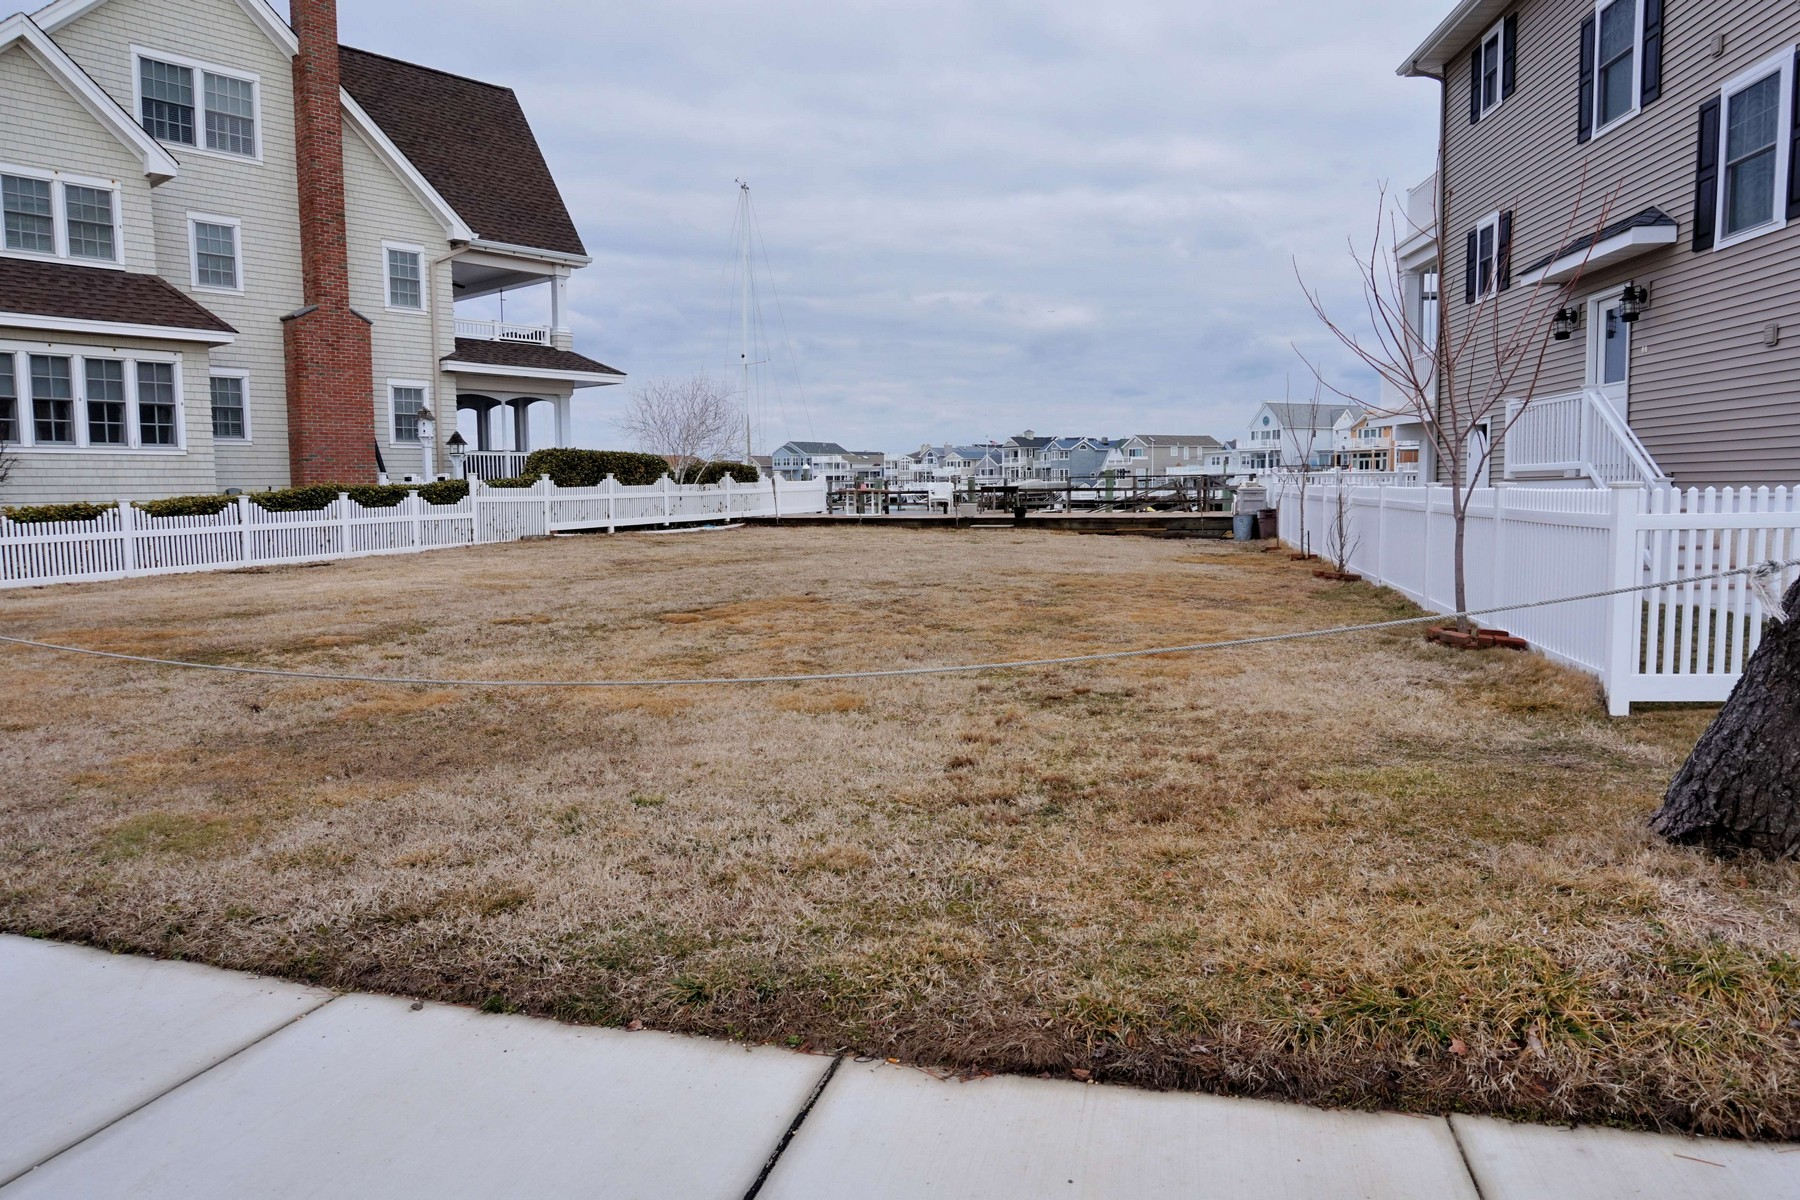 Terreno para Venda às Large Bay Front Lot 1 W 18th Steet, Ocean City, Nova Jersey, 08226 Estados Unidos